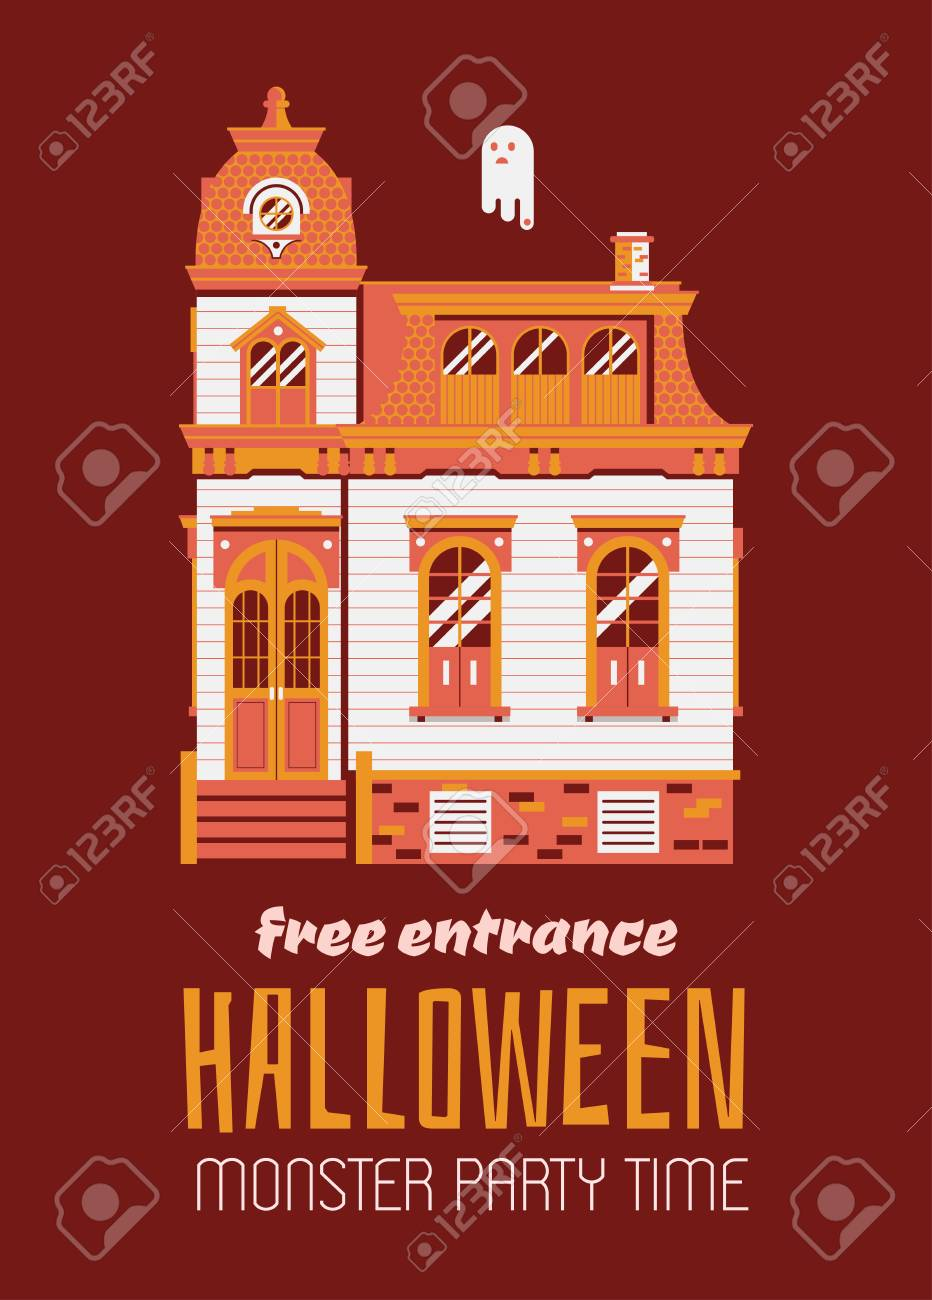 Halloween Night Party Invitation Card With Victorian Mansion And Ghost Vintage Or Flyer